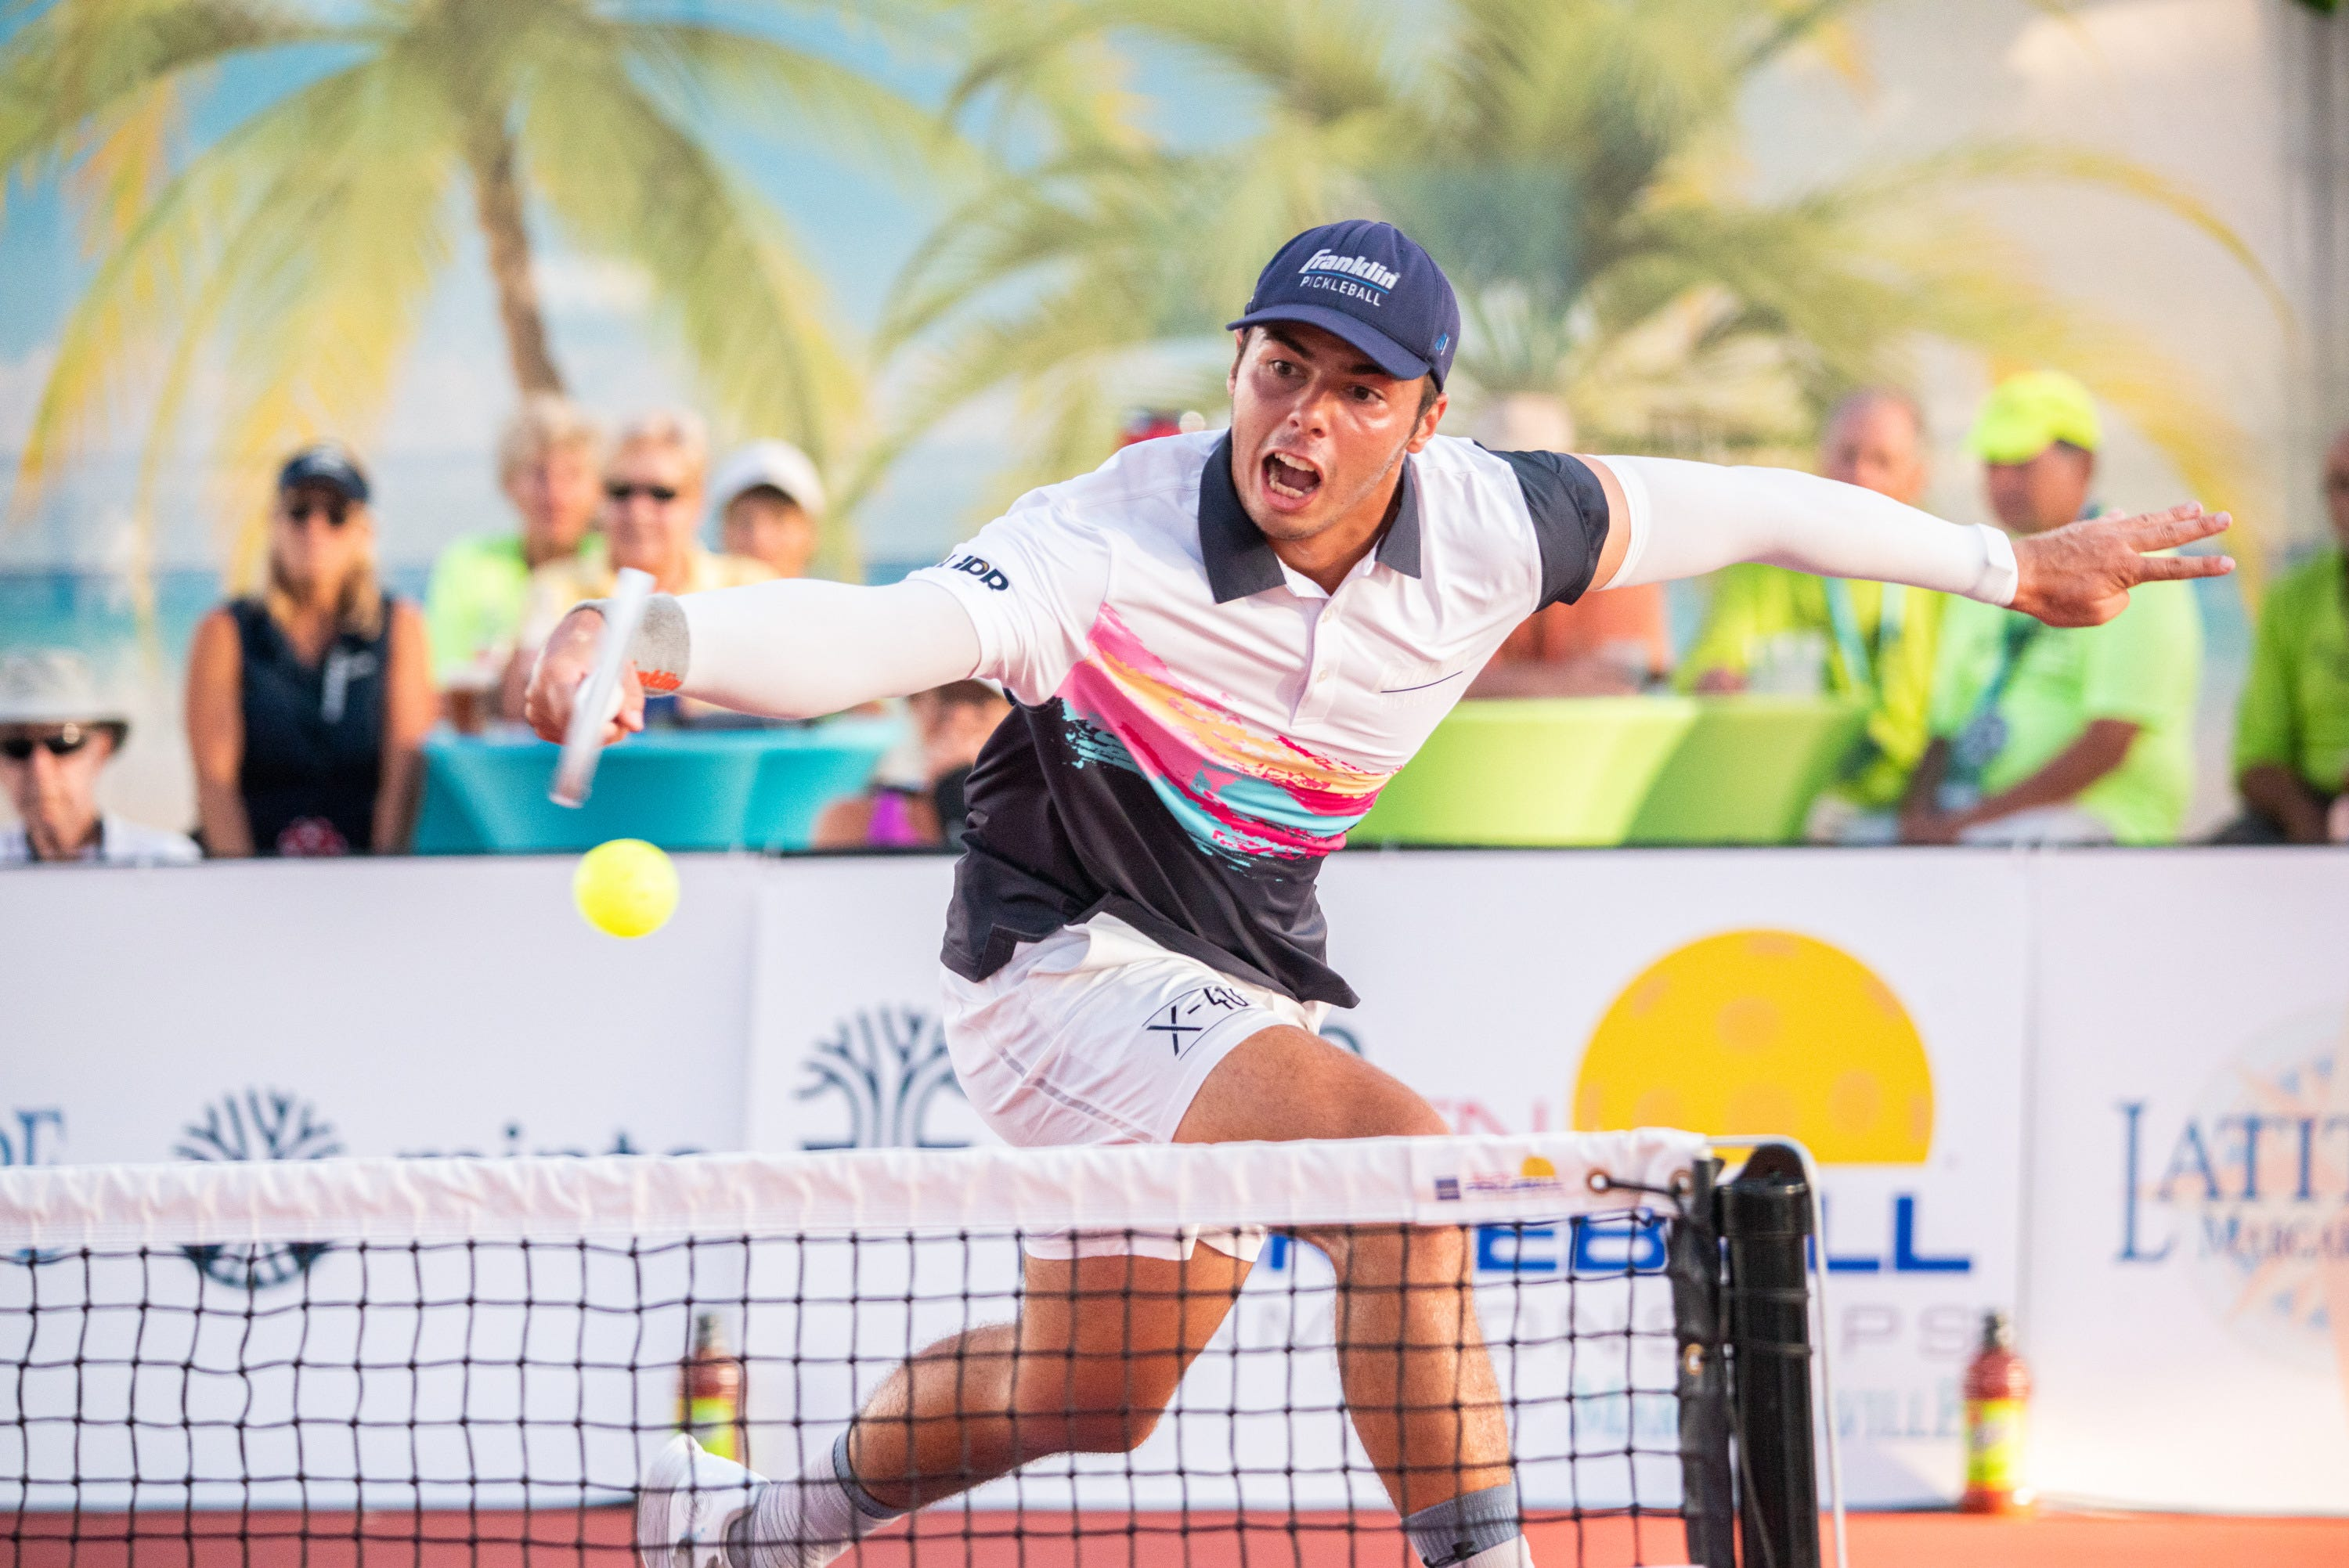 Pro singles champions crowned as U.S. Open Pickleball Championship kicks off in Naples 2